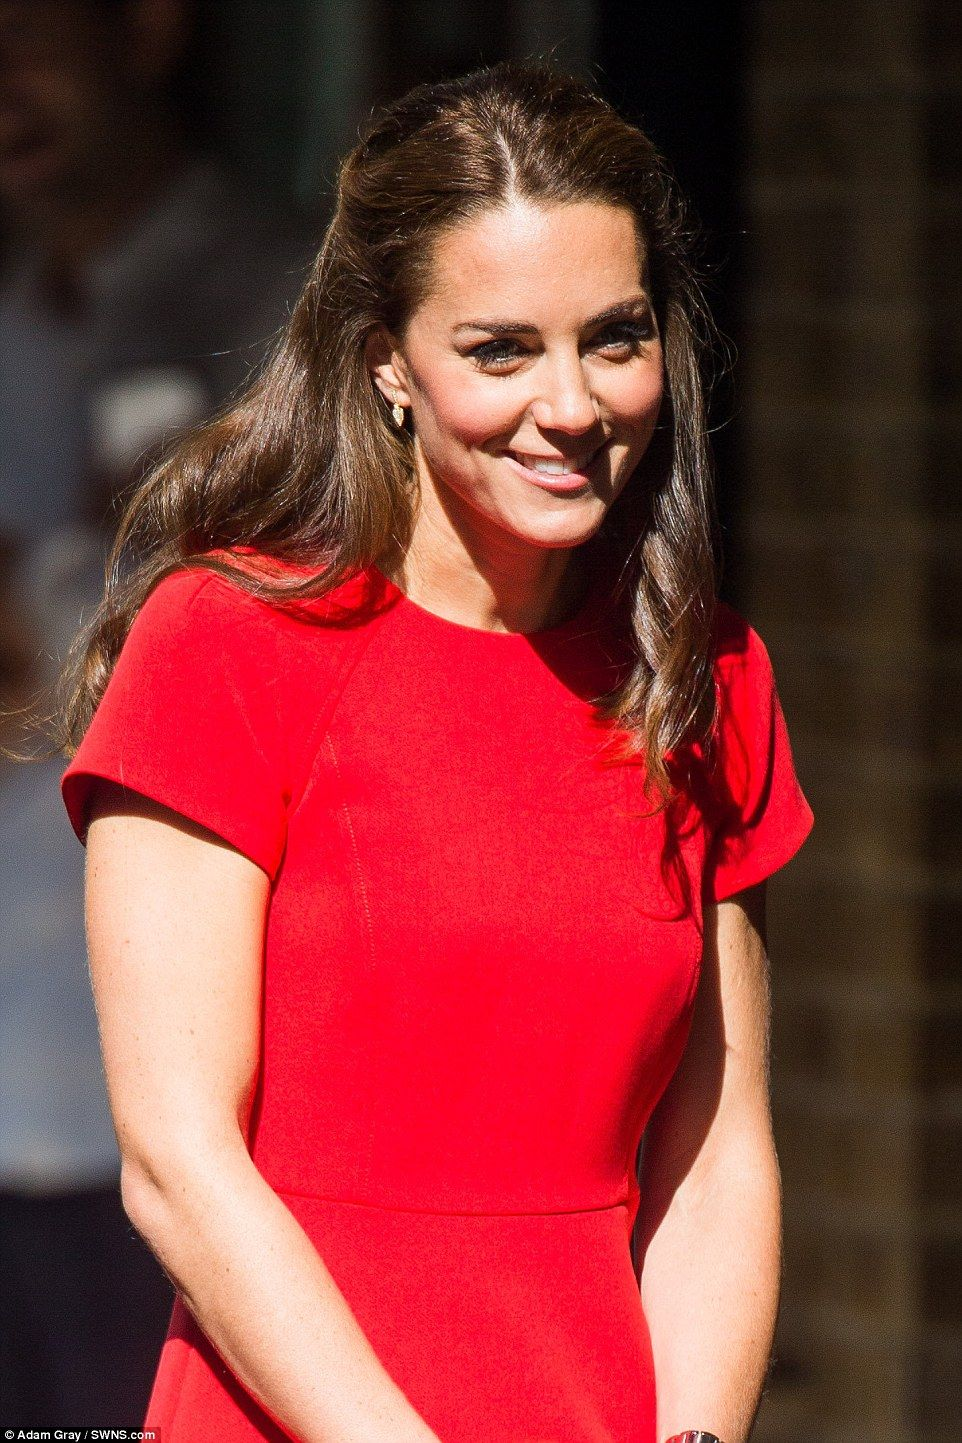 The Duchess of Cambridge and Prince William made a low-key, unannounced visit to…